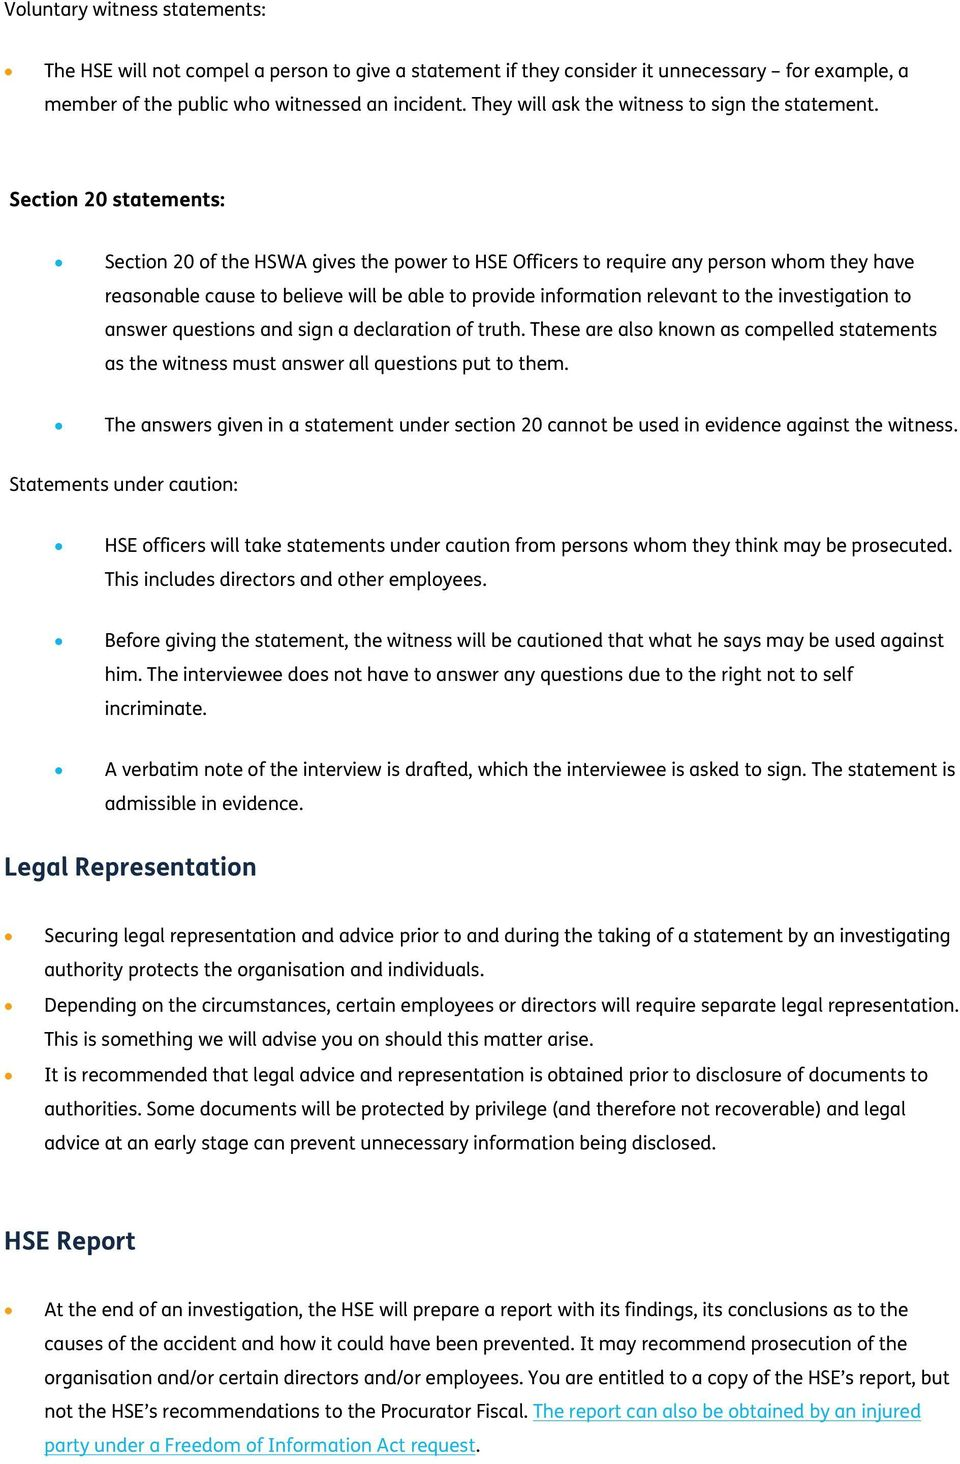 Section 20 statements: Section 20 of the HSWA gives the power to HSE Officers to require any person whom they have reasonable cause to believe will be able to provide information relevant to the